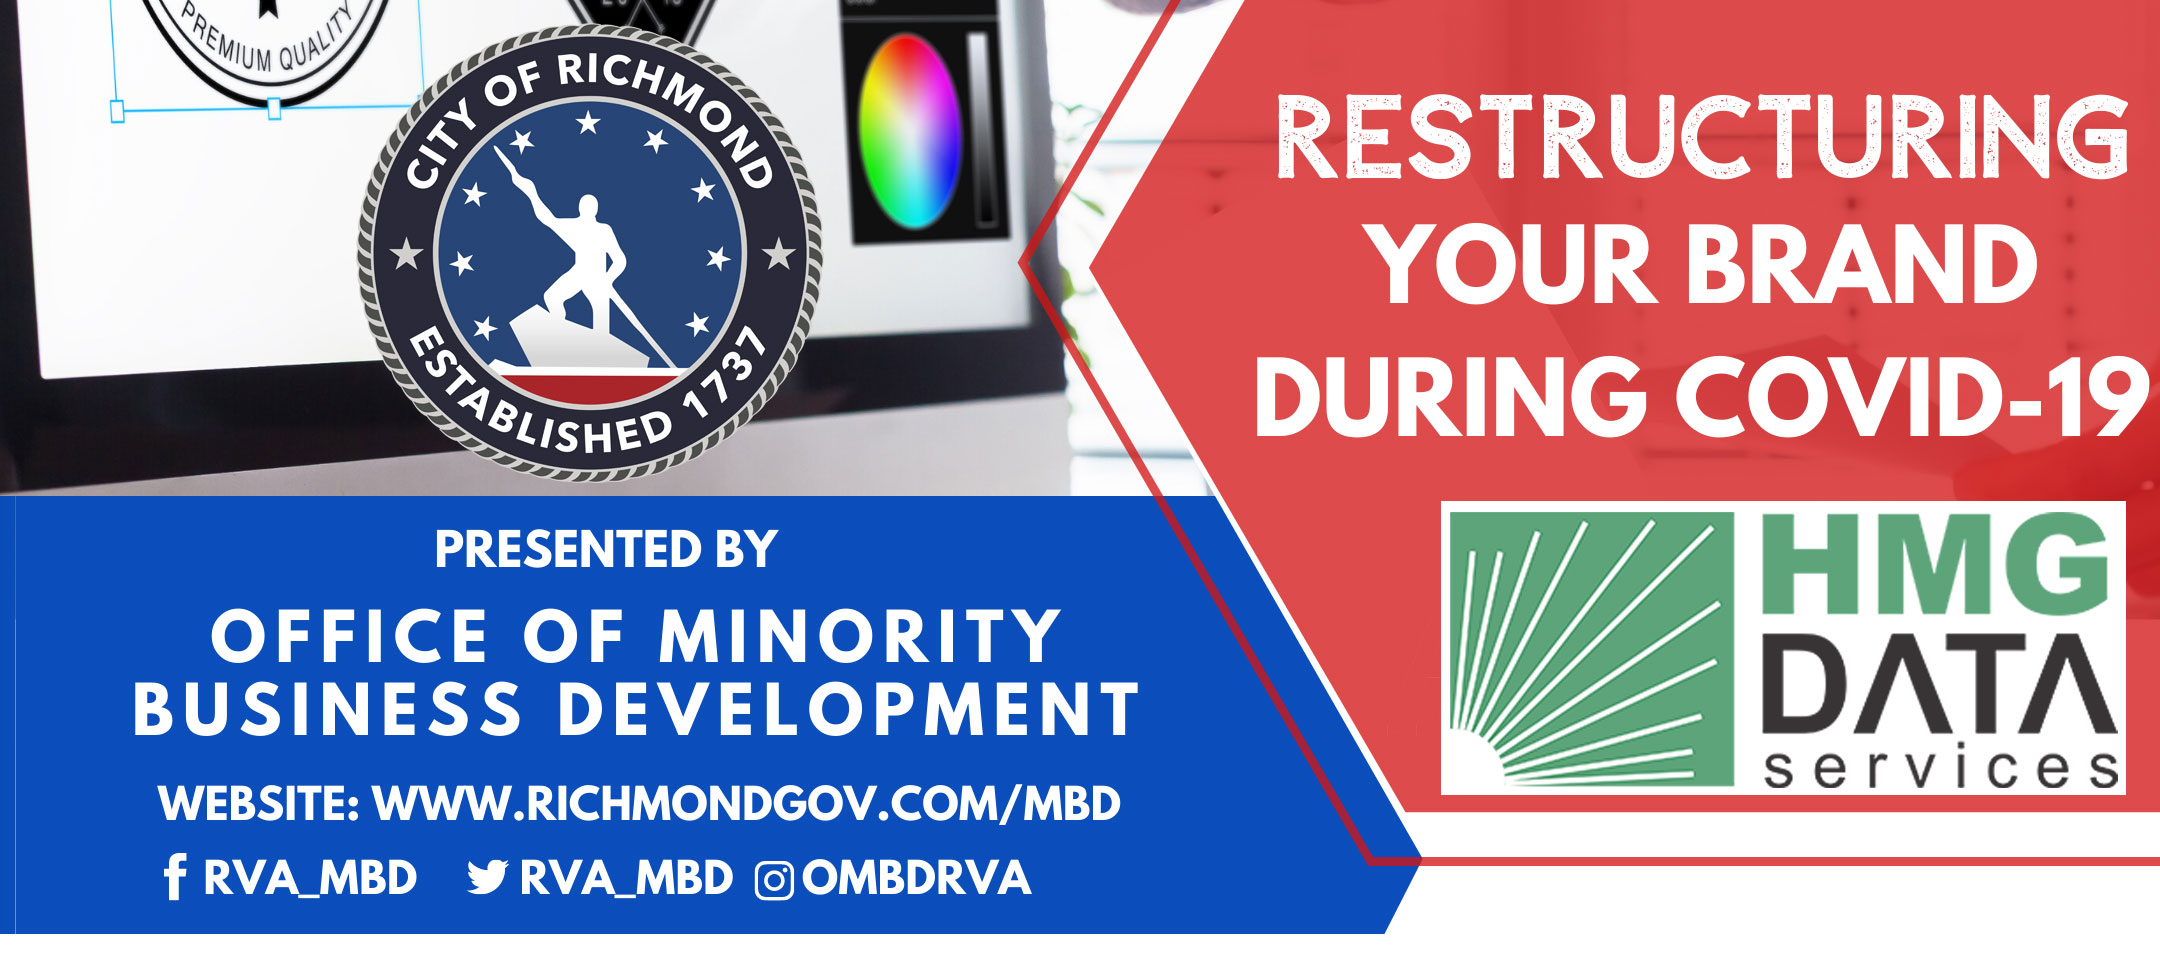 Restructuring Your Brand During COVID-19 | Richmond Office of Minority Business Development